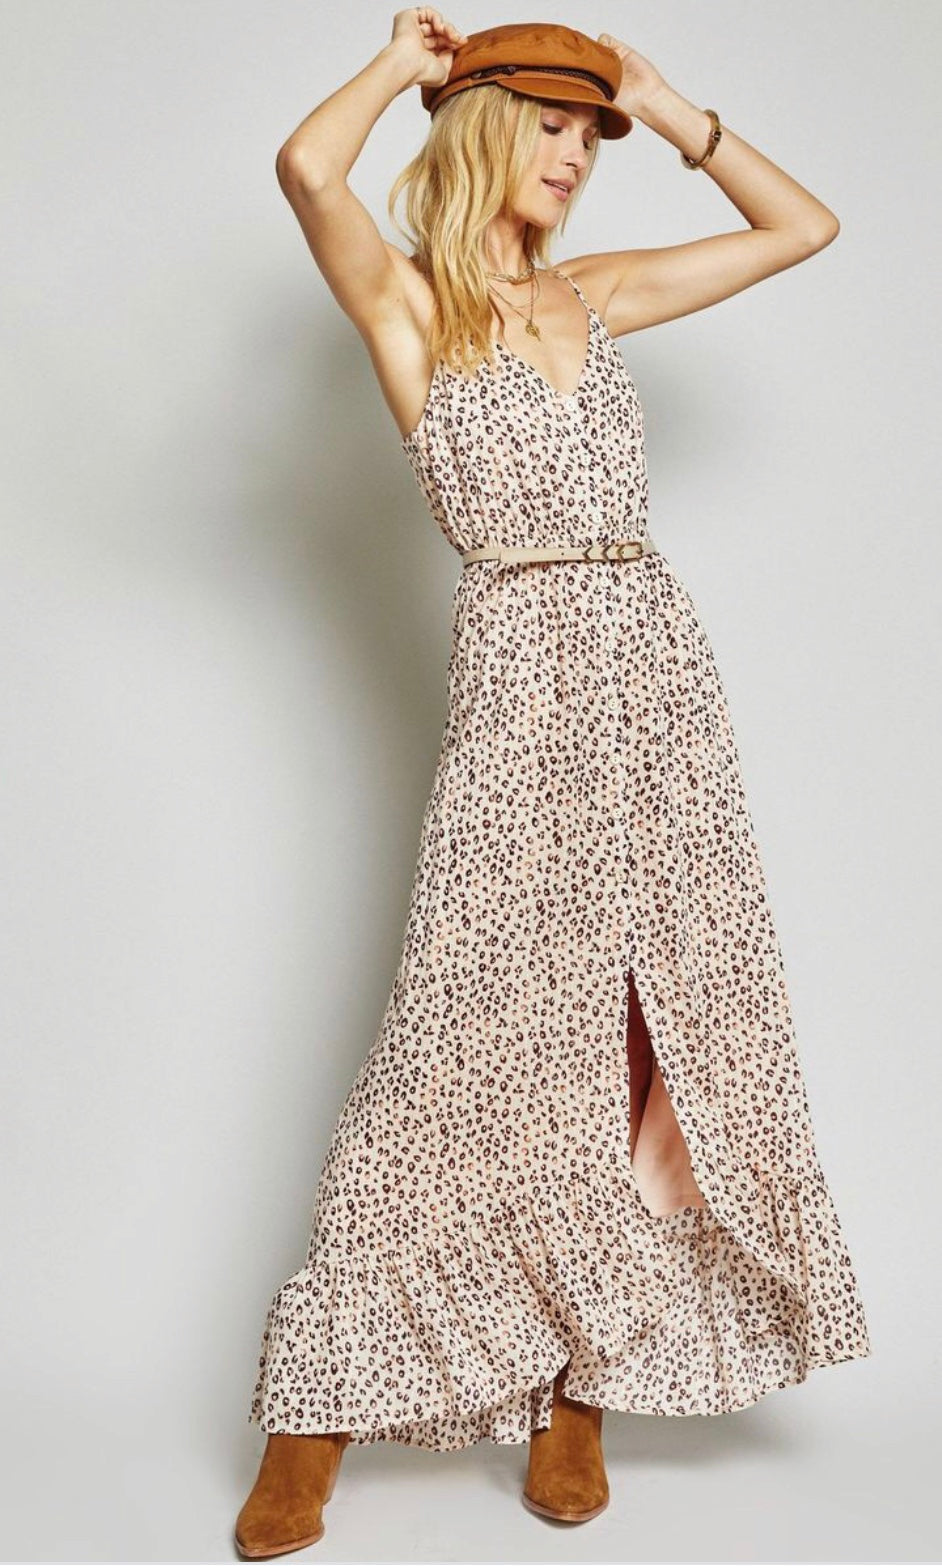 REBEL HEARTS MAXI DRESS